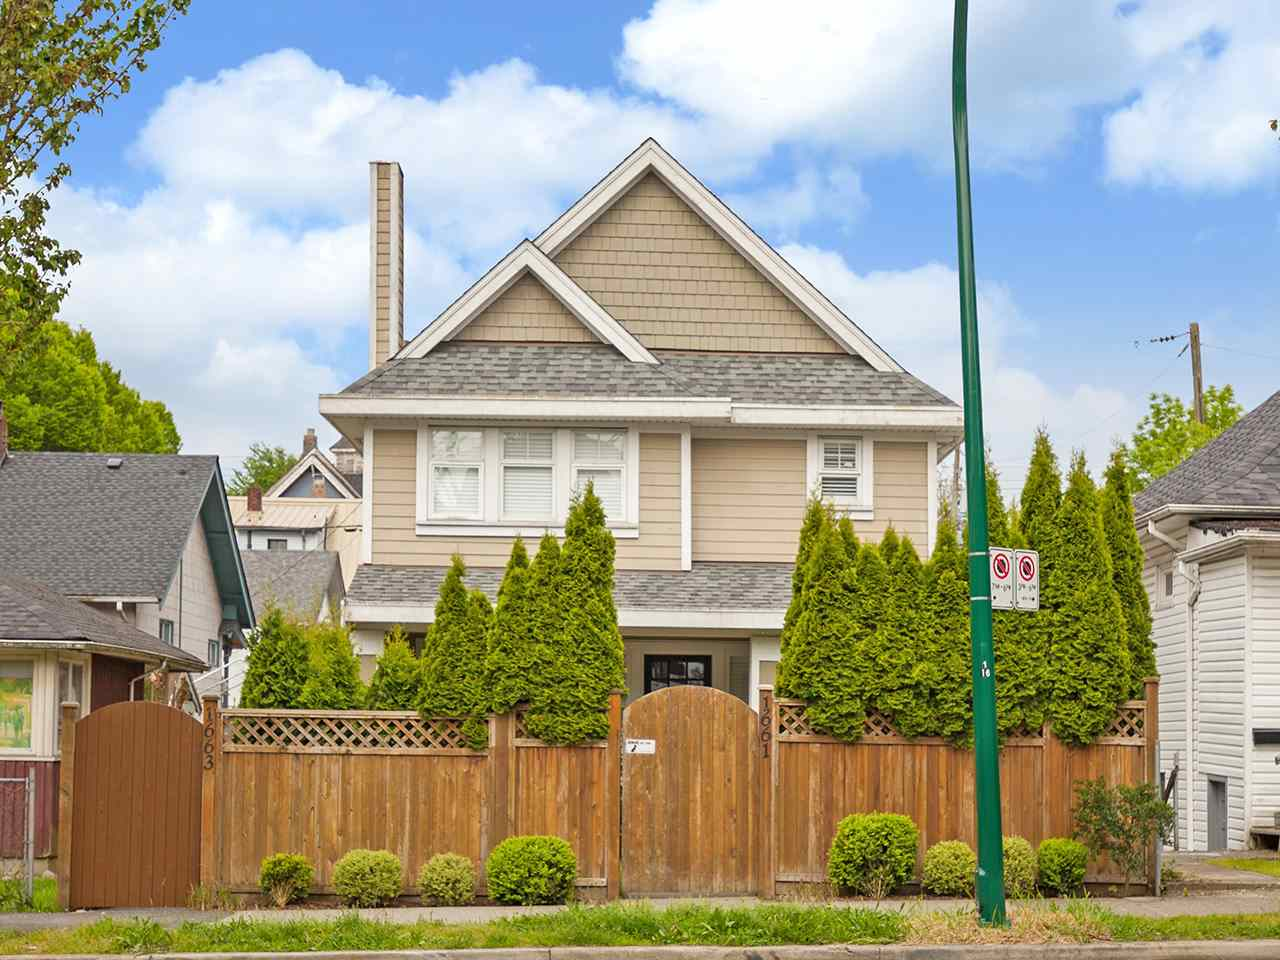 Main Photo: 1663 VICTORIA Drive in Vancouver: Grandview VE House 1/2 Duplex for sale (Vancouver East)  : MLS(r) # R2169220